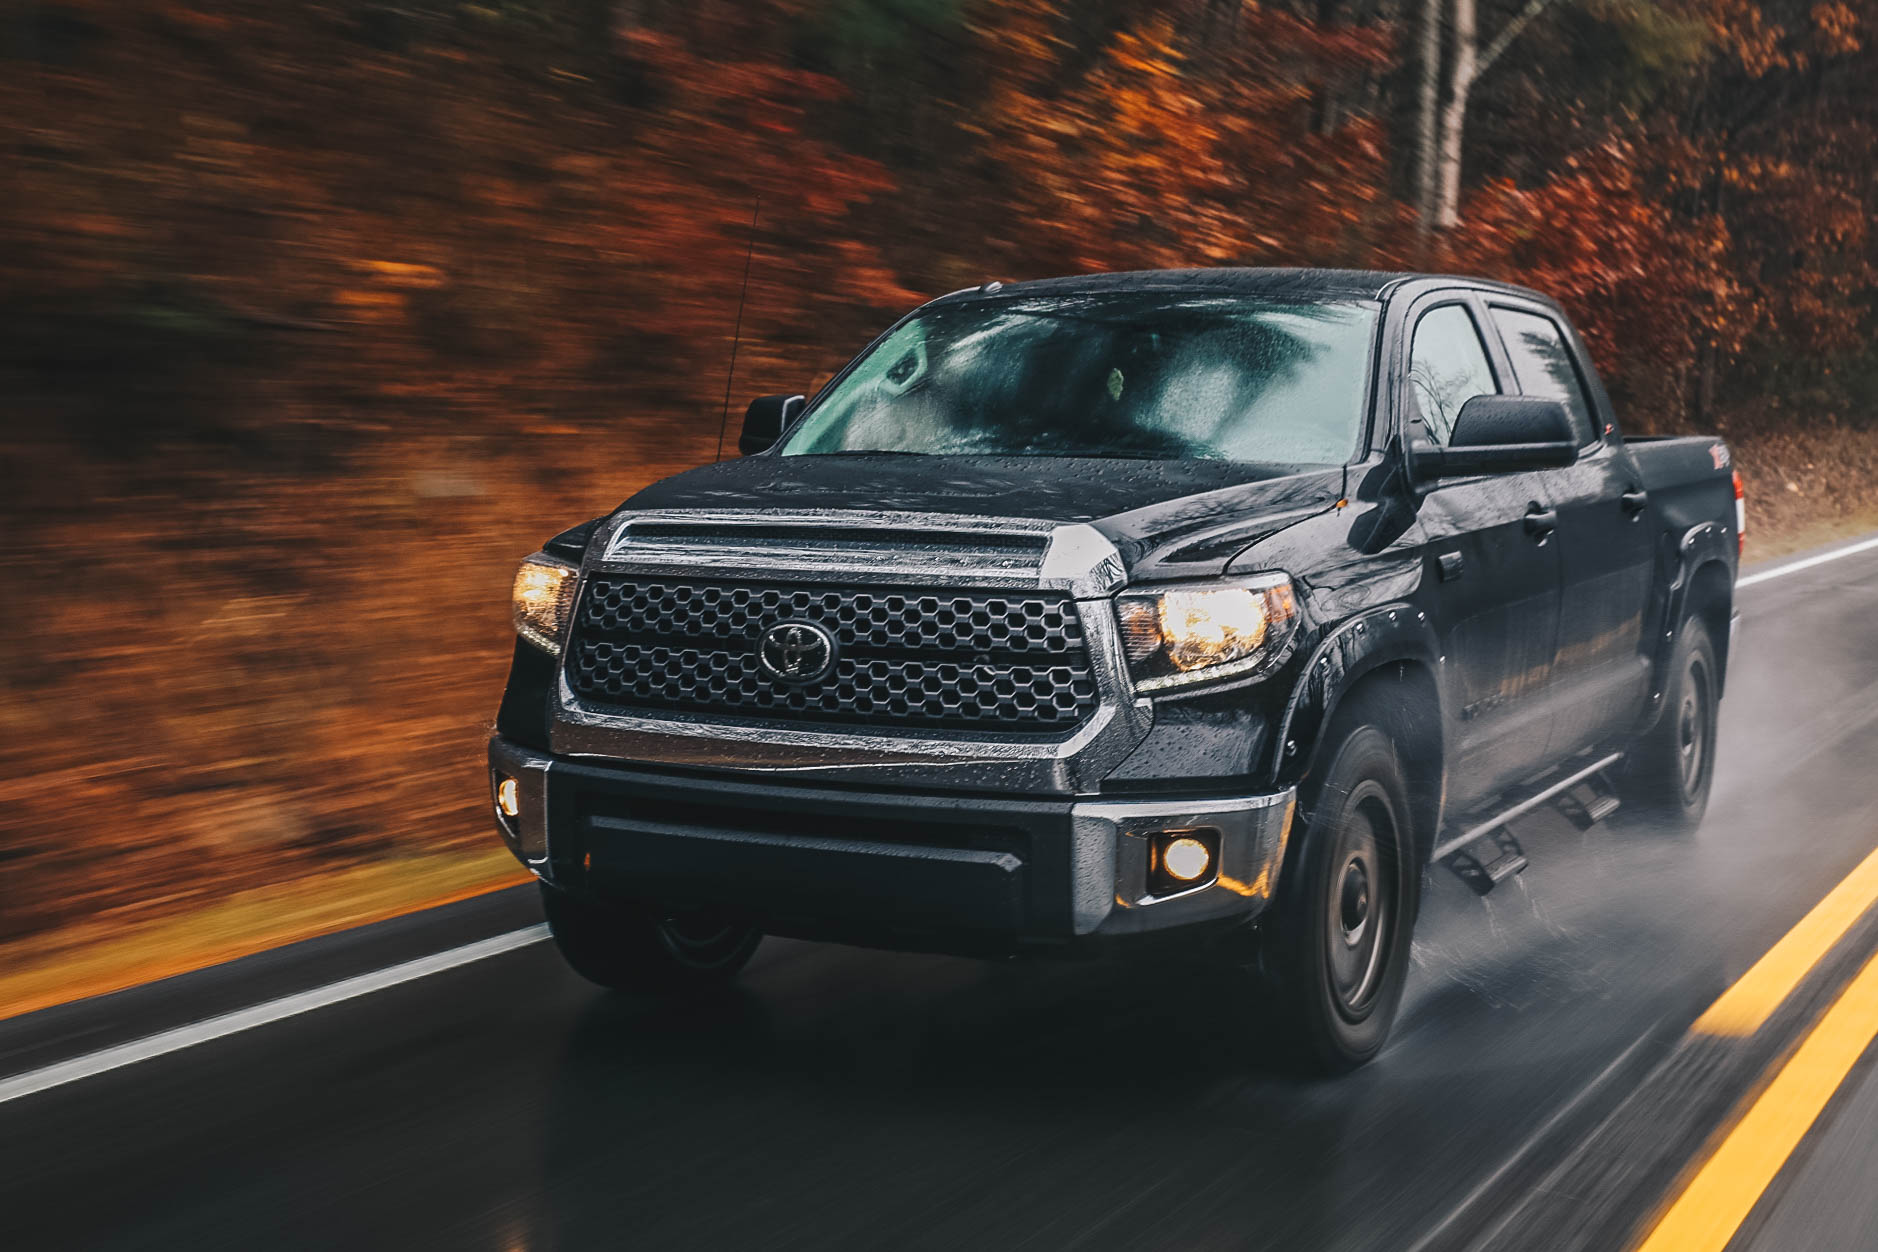 Our Toyota Tundra XSP Adventure